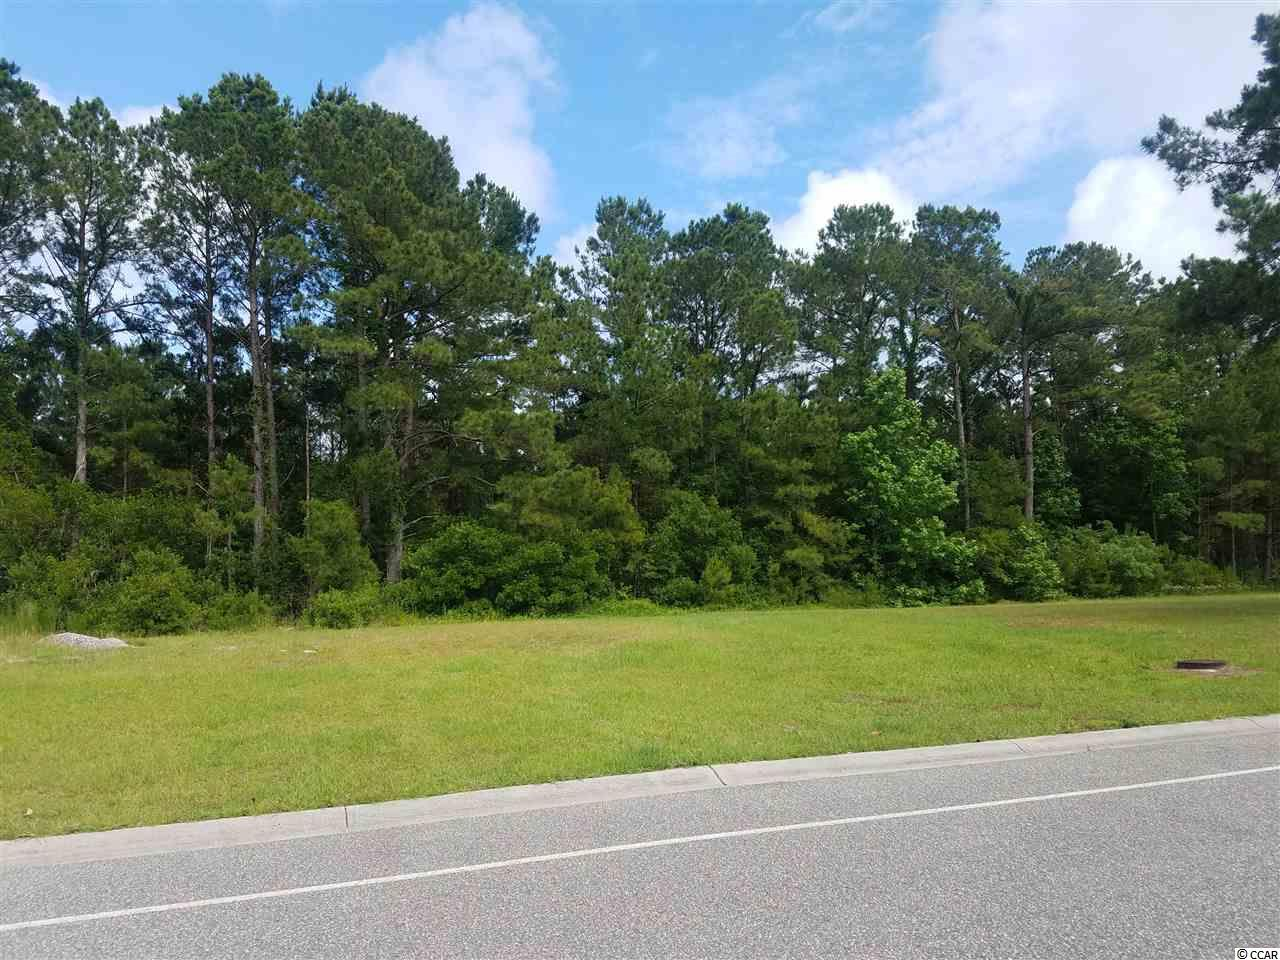 It doesn't get any better than this! If you prefer an all brick home with privacy walls built by a custom builder in a gated community only 8 minutes to the NMB beachfront, Waterfall is for you. Built around Tranquility Lake, an 8.5 acre stocked lake for fishing or non gasoline boating, Waterfall is a 1 mile circle of 138 lots with an Amenity Center, a pool, fitness, TV lounge, kitchen and low POA fees. Little traffic, Horry Co only taxes, not in a flood zone, and up graded standards are also great features of this beautiful and exceptional community. Waterfall is about location, location, location. 1 mile to 31, 5 minutes to Seacoast Hospital and medical offices, 5 minutes to 4 of the 5 NMB schools, 5-10 minutes to NMB shopping, dining and 1 mile to the NMB Sports Park for the zip line, water and aqua parks, segway trails, 2 doggie parks and all of the sports for you and your visitors. If golfing is your thing, there are 20 golf courses for your golfing variety with 20 minutes. The location also offers little to no seasonal traffic giving you a serene walking, biking or running area but yet you are close to everything the North Strand offers. Check us out.!!!!  .